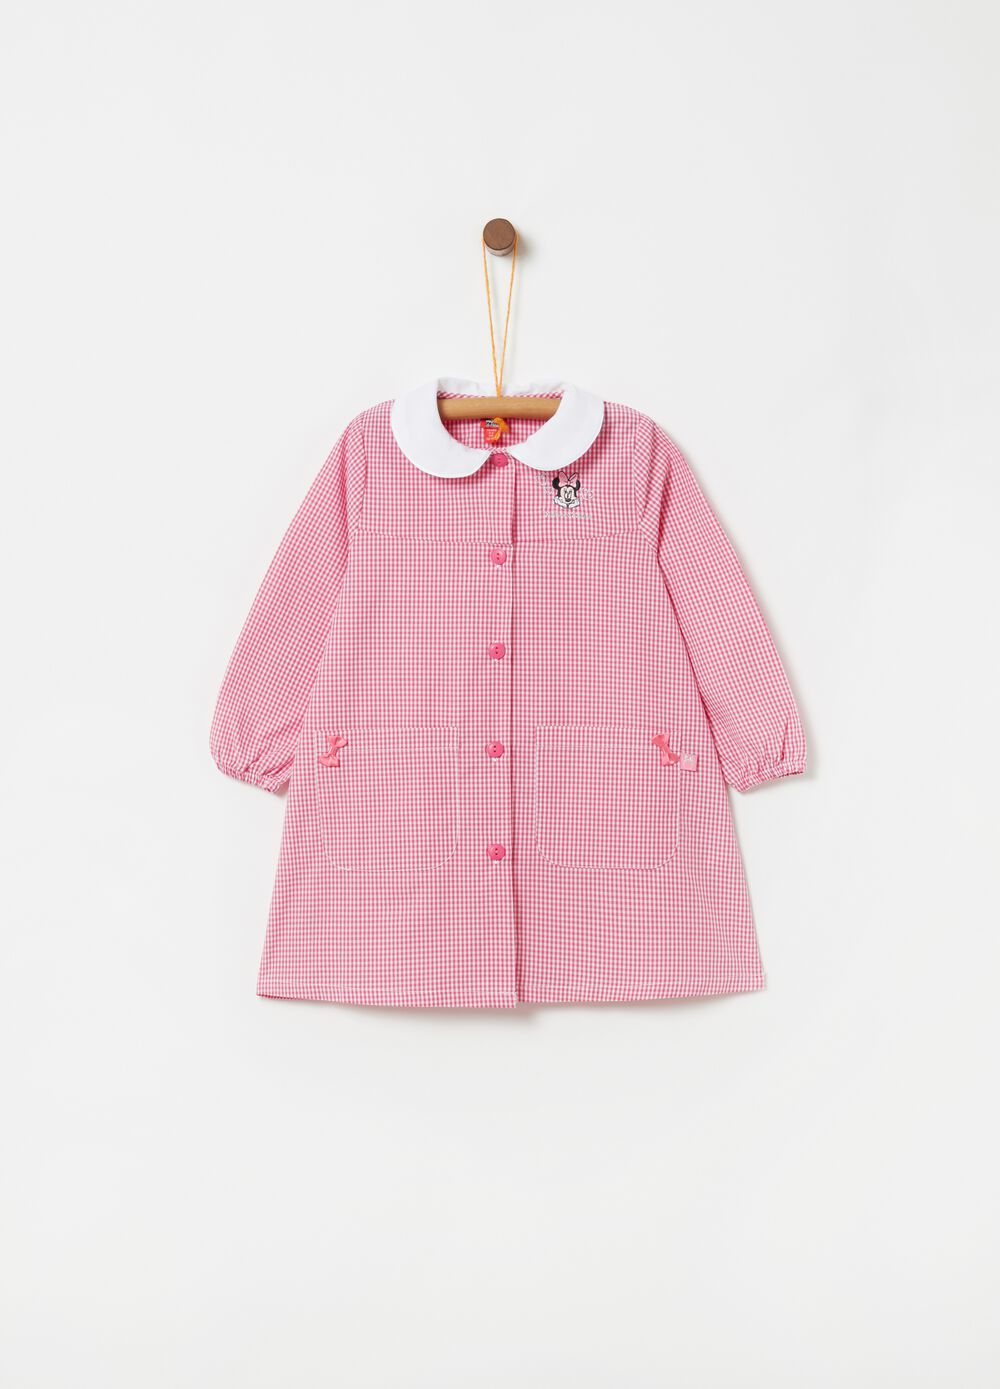 Checked pattern school smock with Minnie embroidery